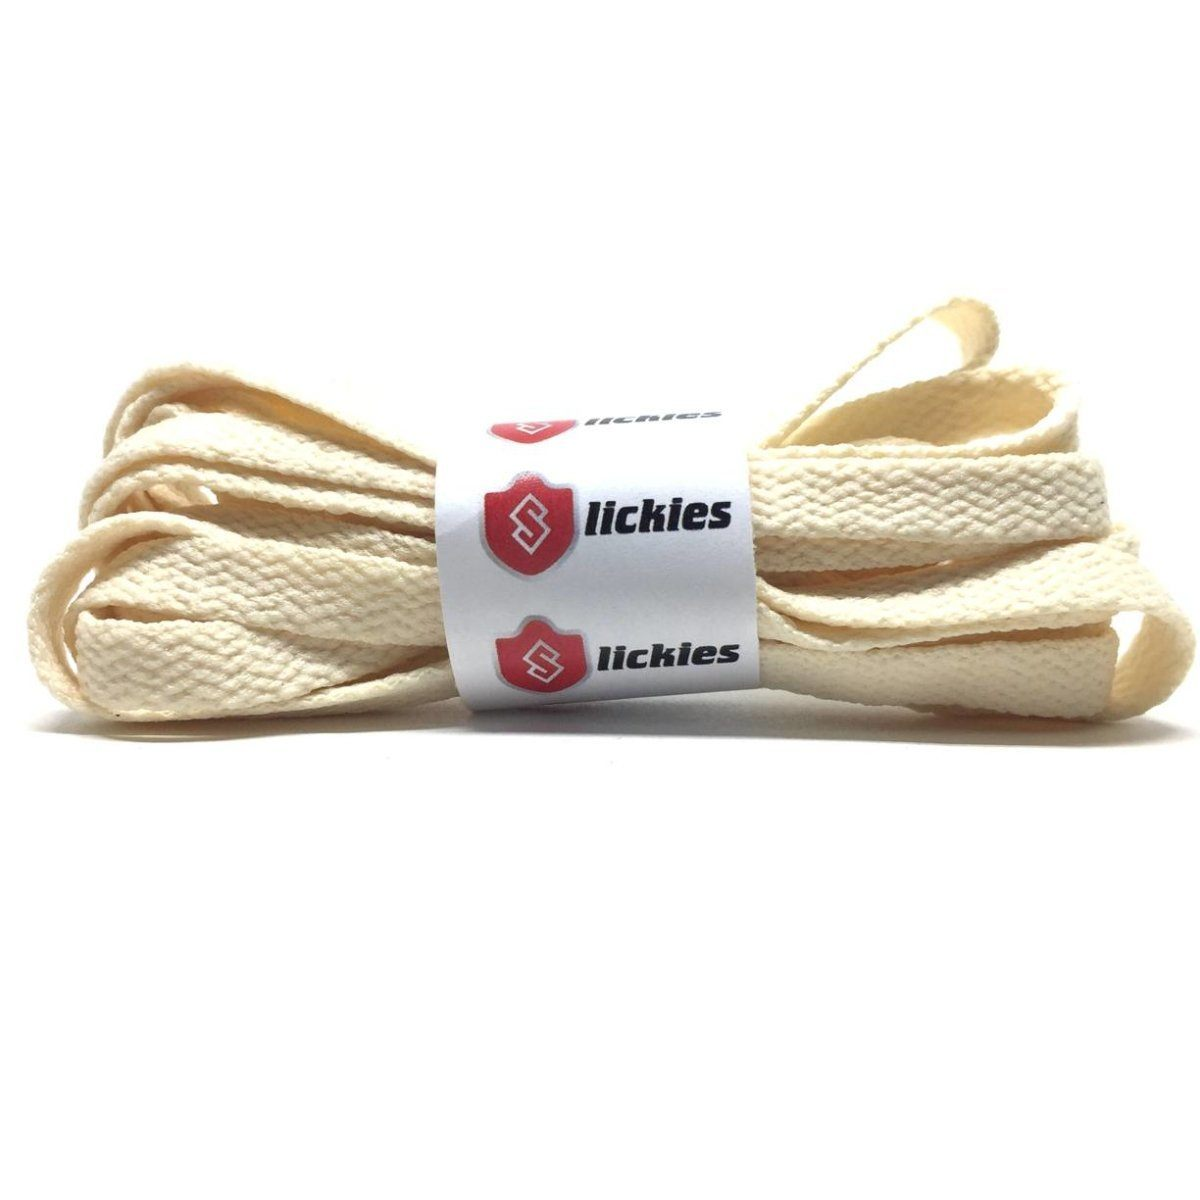 Flat Thin - BASICS Flat Thin Laces - Vintage Cream